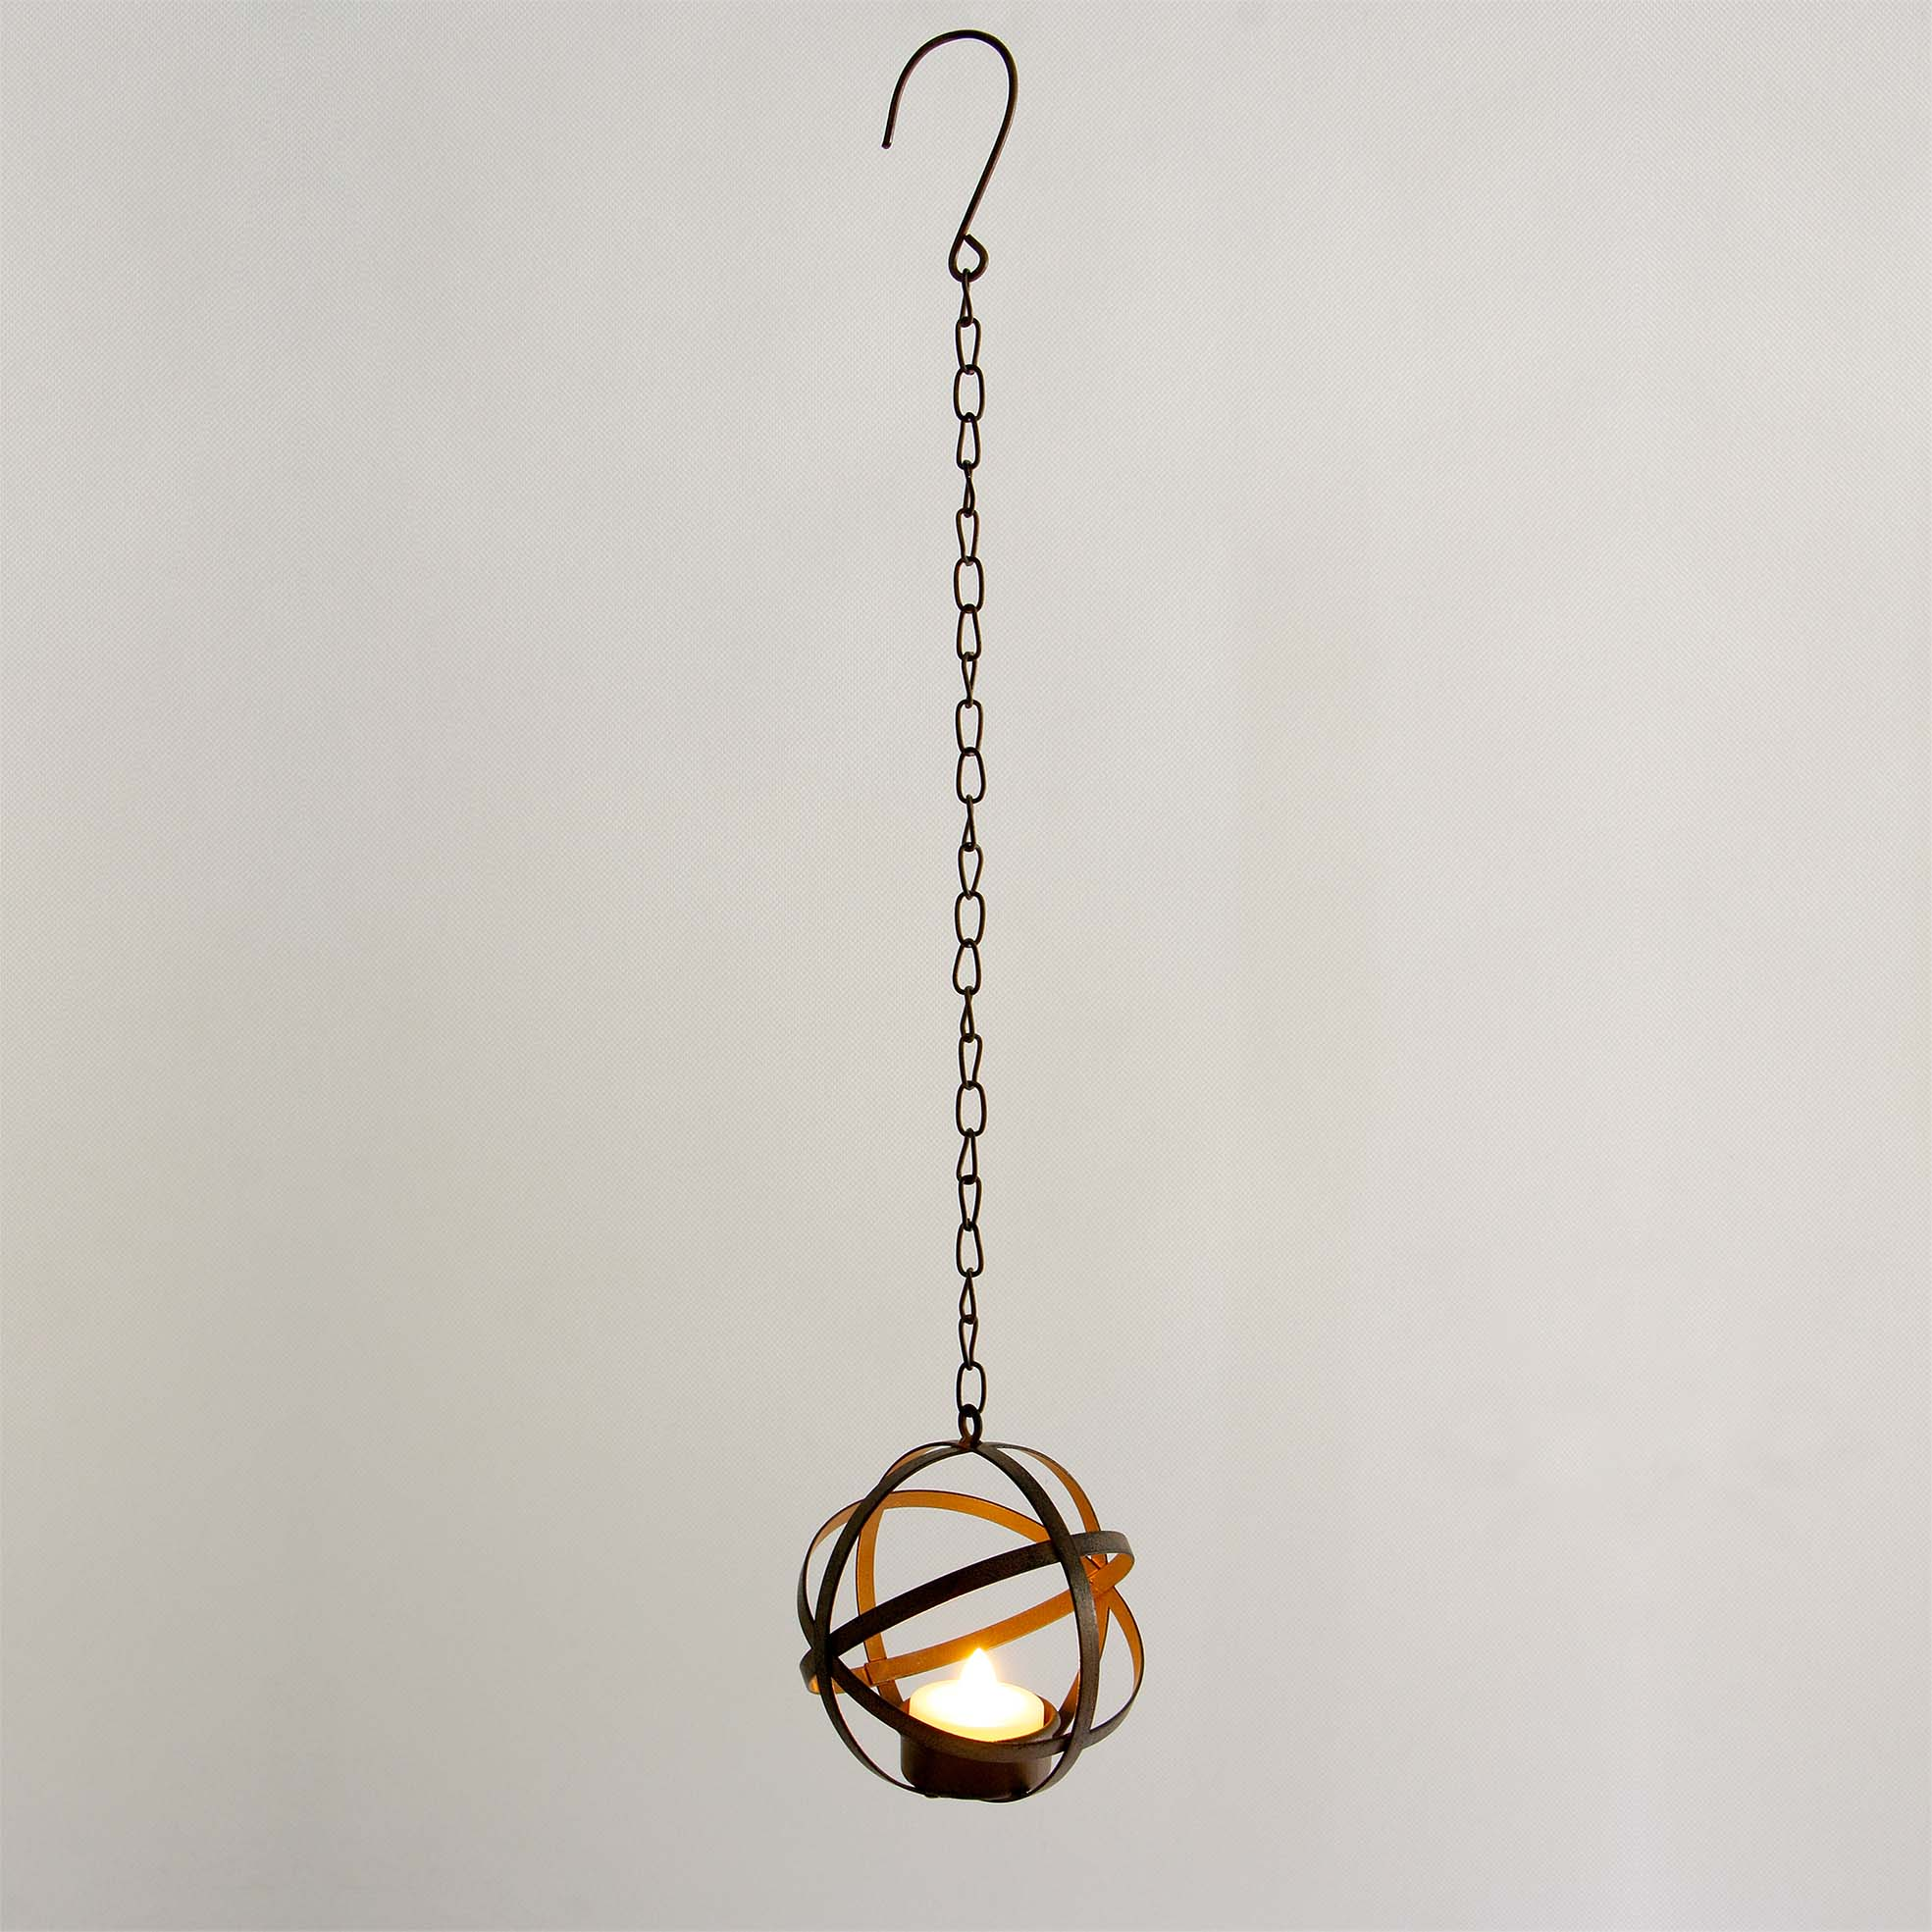 Solar Tea Light Candle with Metal Ball Holder Featured Image